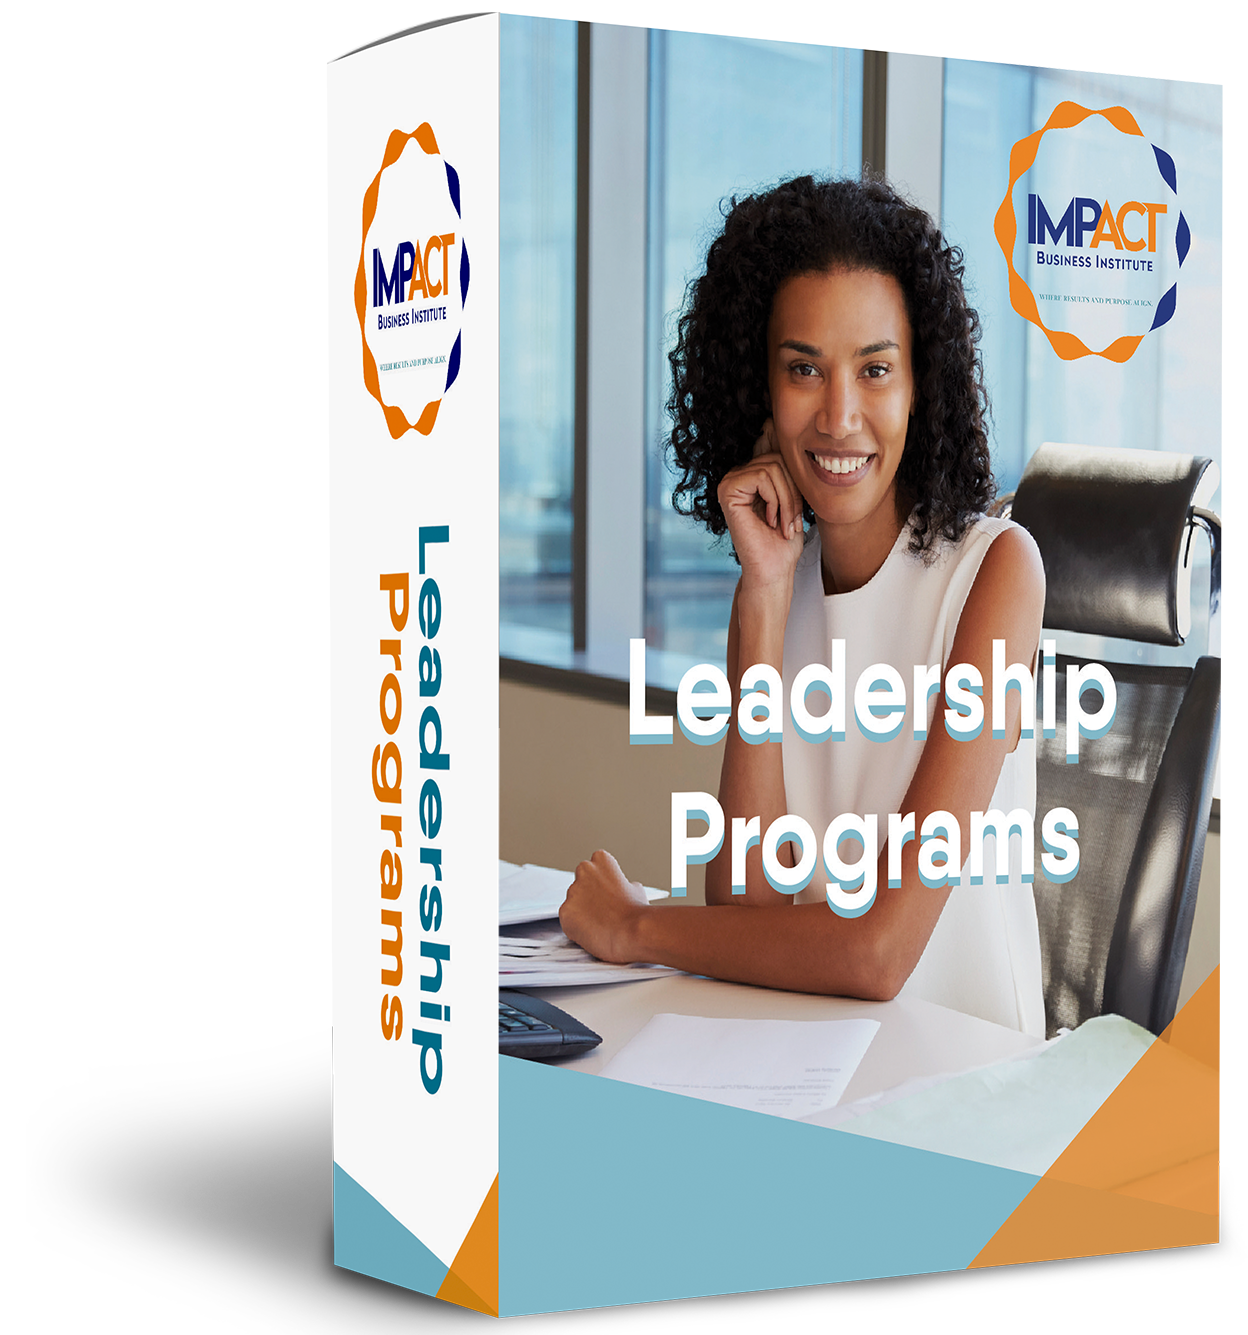 318532_IBI Products_Leadership Programs_v1_111218.png